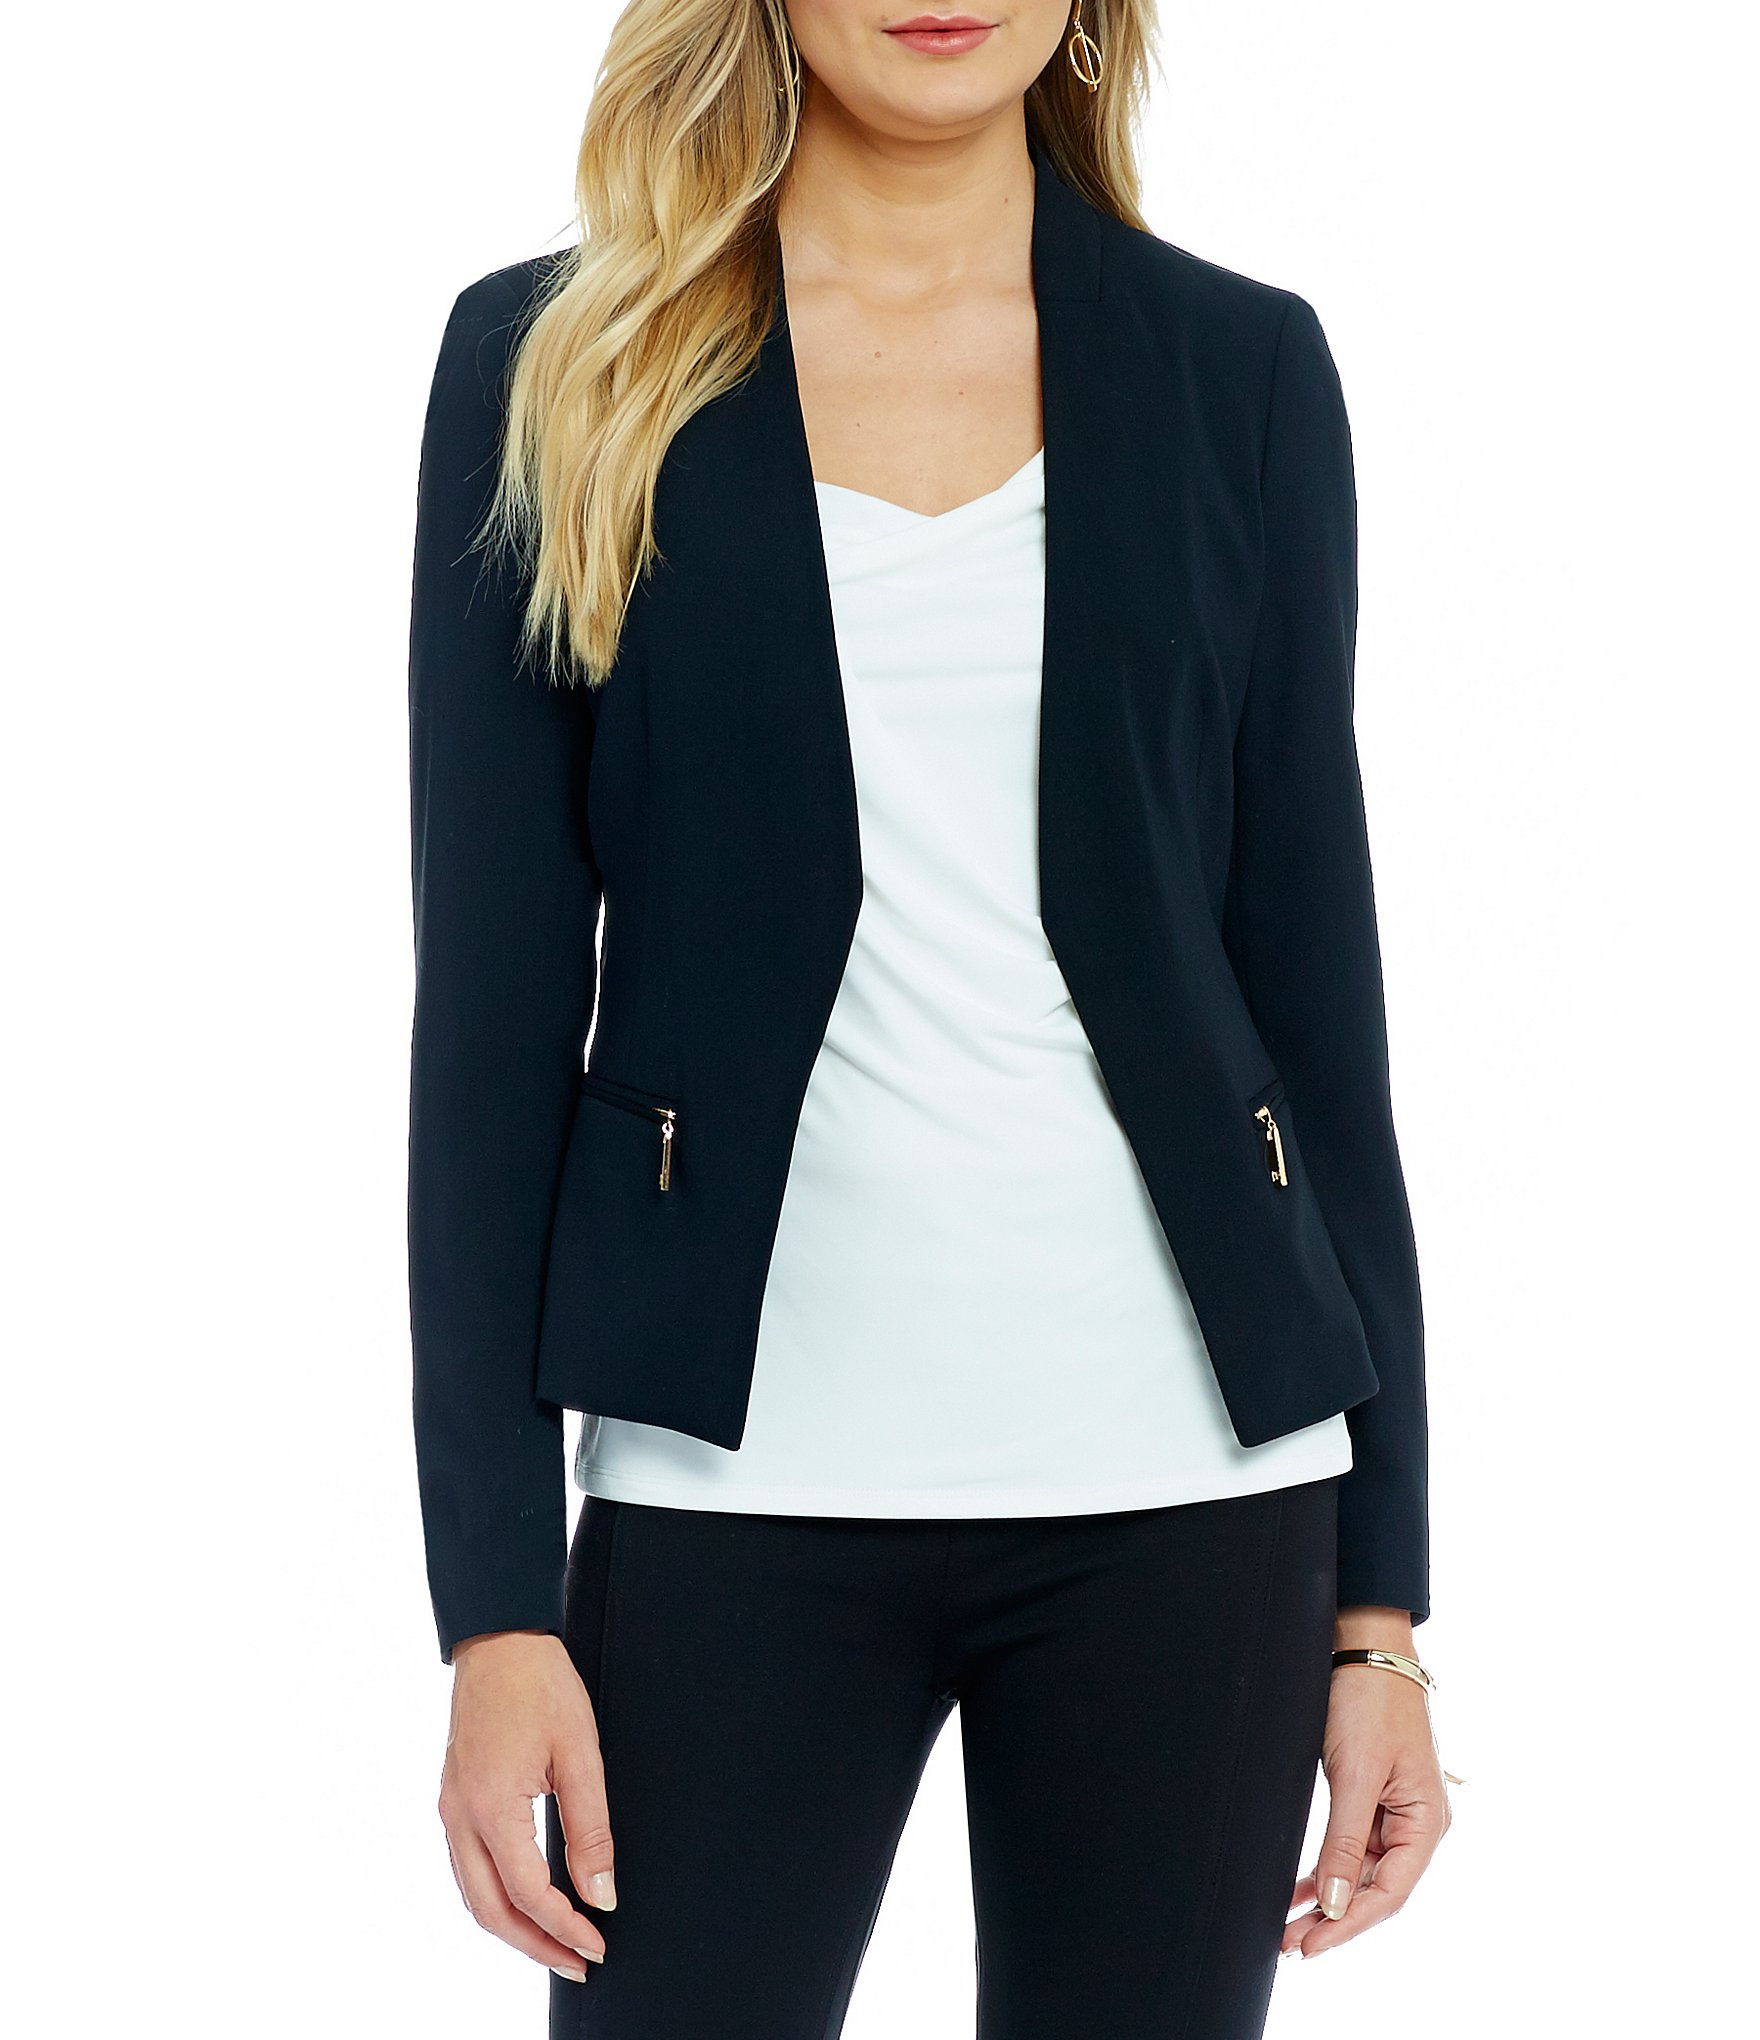 Get a stylish look while wearing black jackets for women